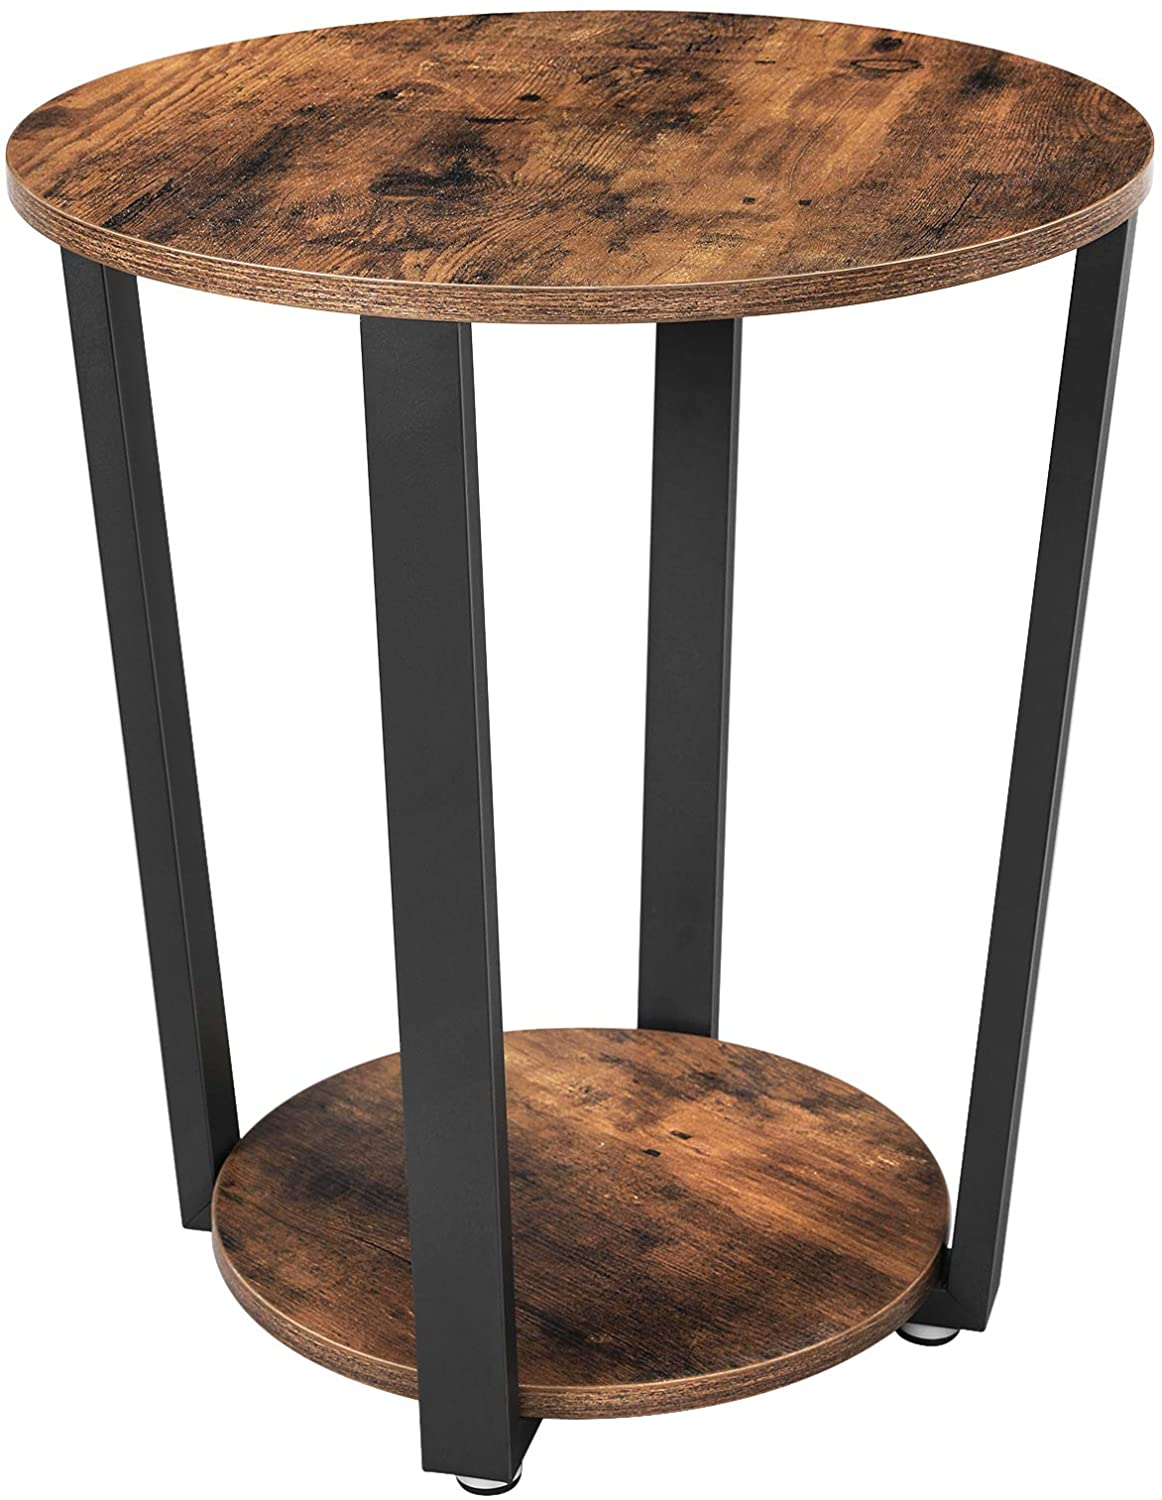 Enjoy fast, free nationwide shipping!  Owned by a husband and wife team of high-school music teachers, HawkinsWoodshop.com is your one stop shop for affordable furniture.  Shop HawkinsWoodshop.com for solid wood & metal modern, traditional, contemporary, industrial, custom, rustic, and farmhouse furniture including our Ryan Industrial Round Sofa Table.